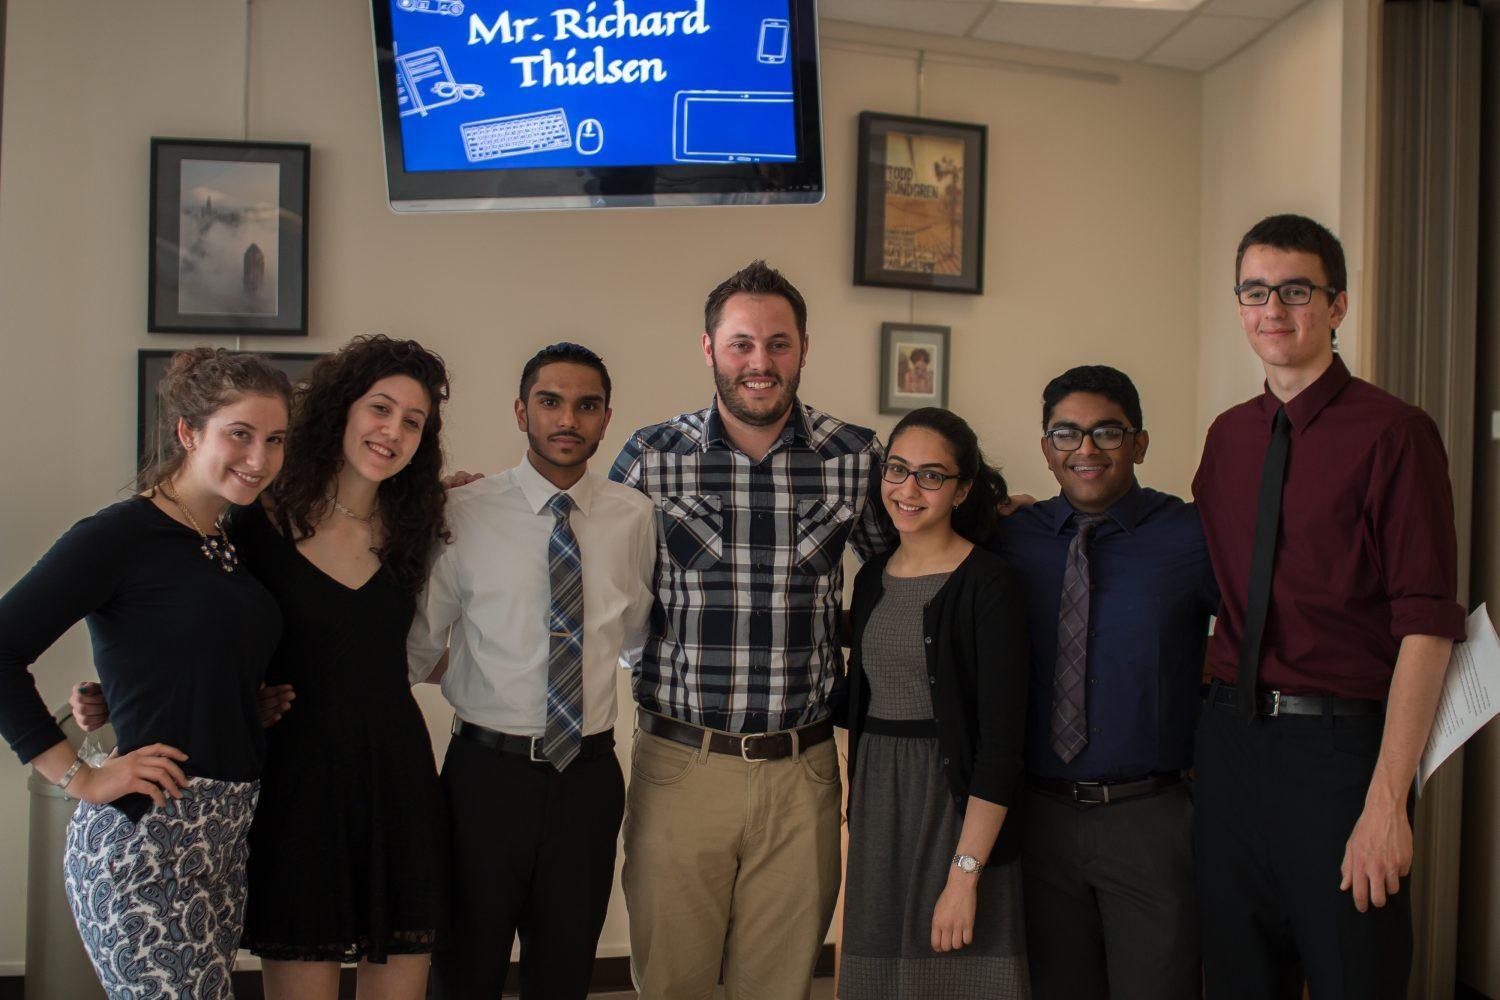 Richard Thielsen named Teacher of the Year, Filip Cejovic Support Staff person of the year